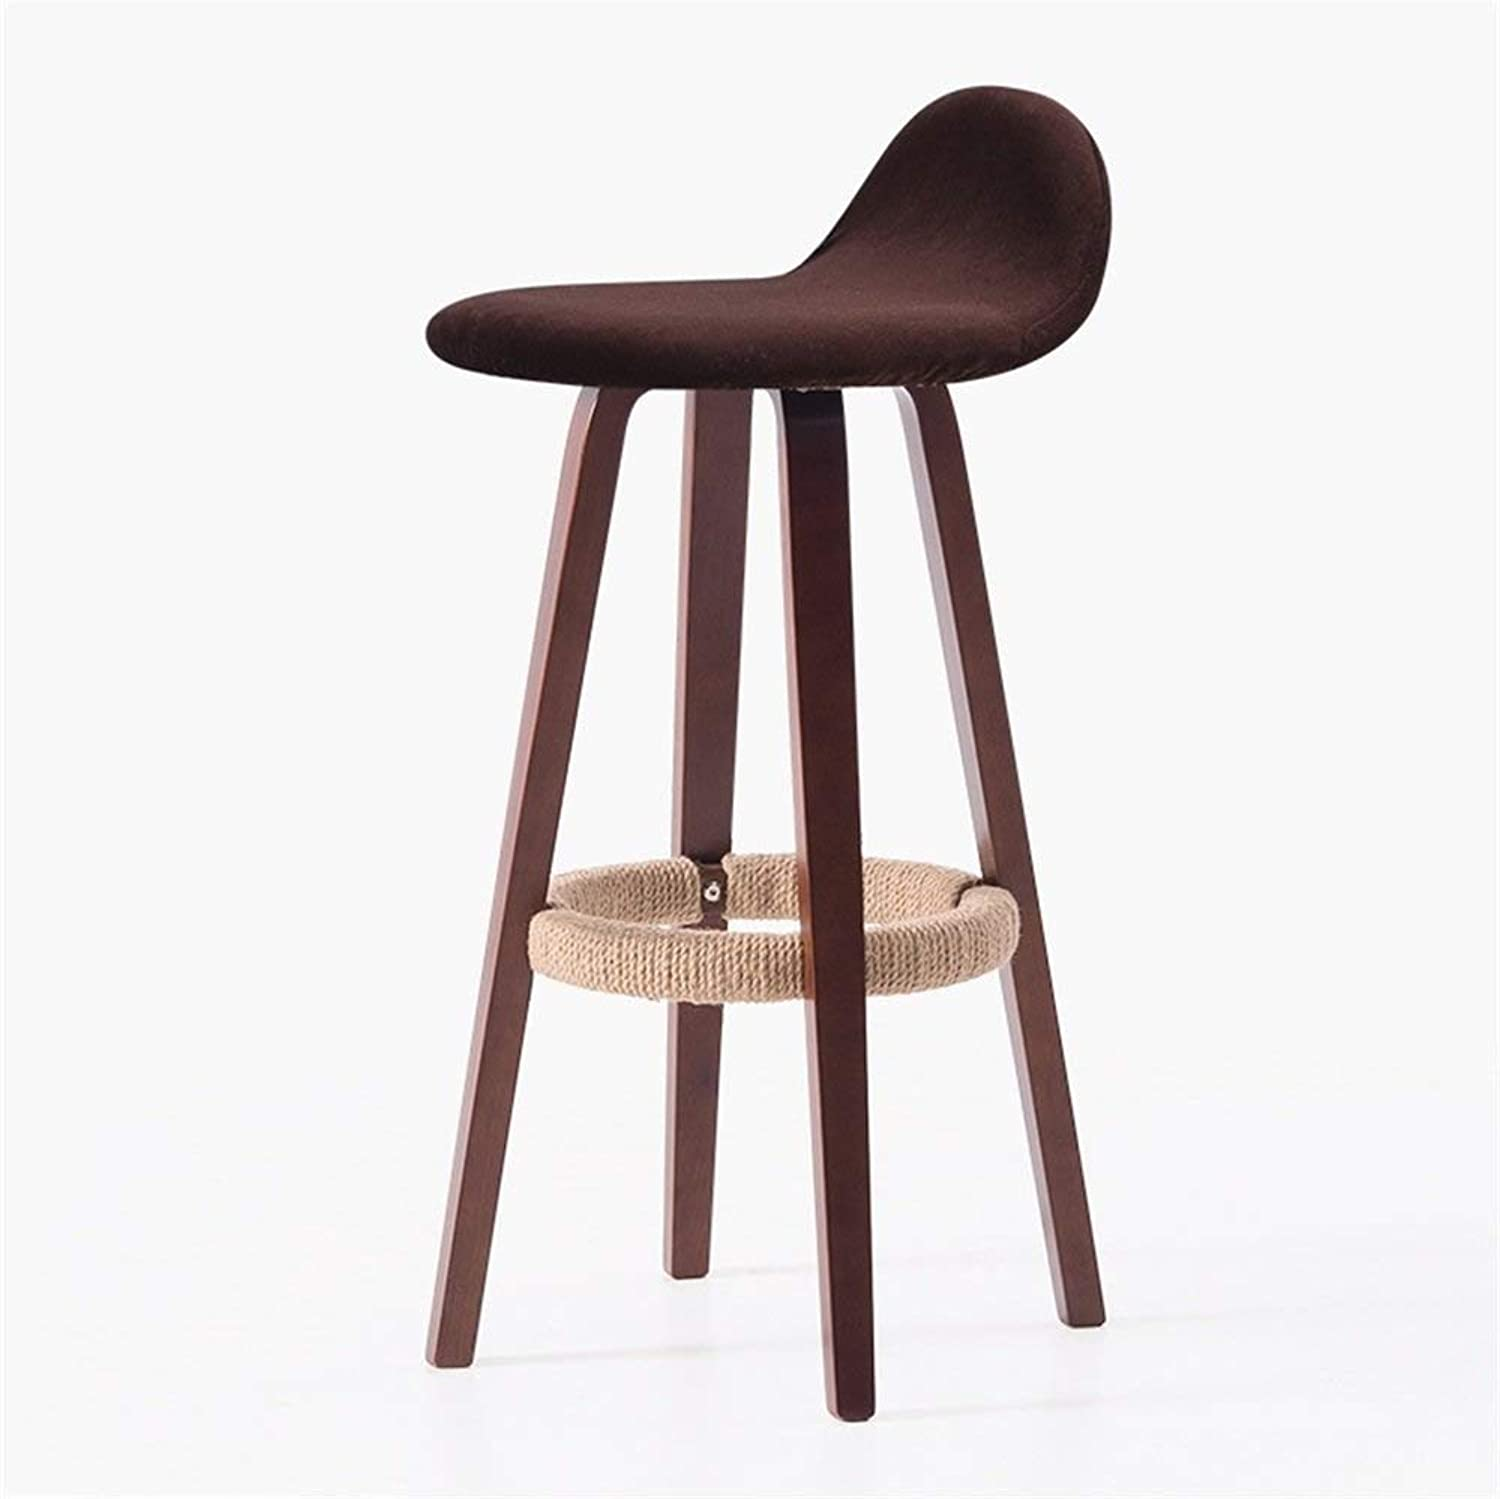 Solid Wood Wrought Iron Bar Stool, Bar Kitchen Height Counter Back Seat (Brown Wood Hemp Rope Art Red Wine color Style)